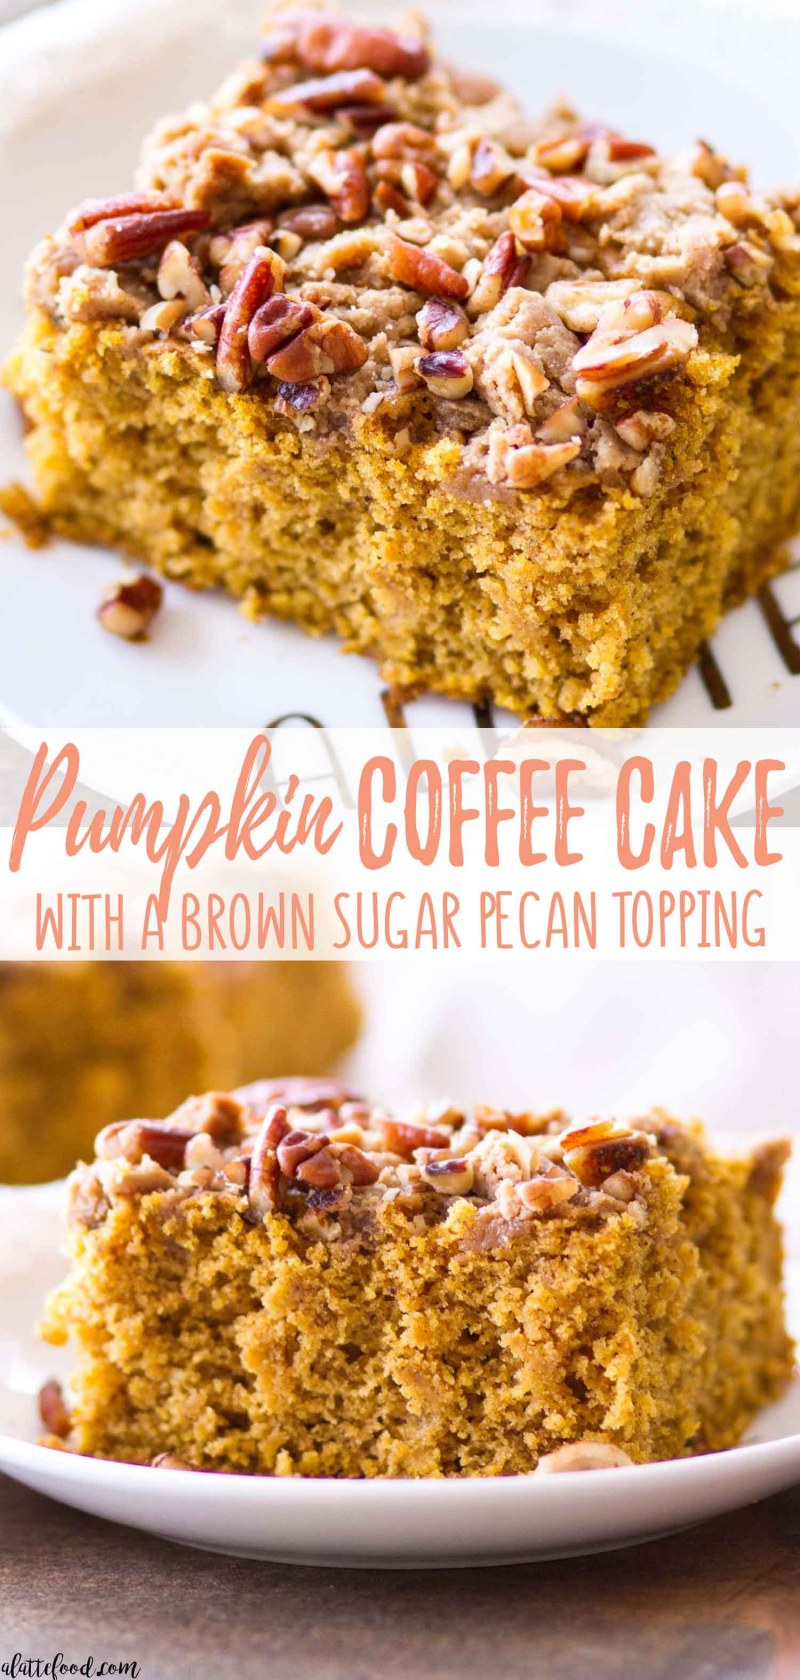 Easy Pumpkin Coffee Cake with a Brown Sugar Pecan Topping (easy homemade coffee cake recipe!)